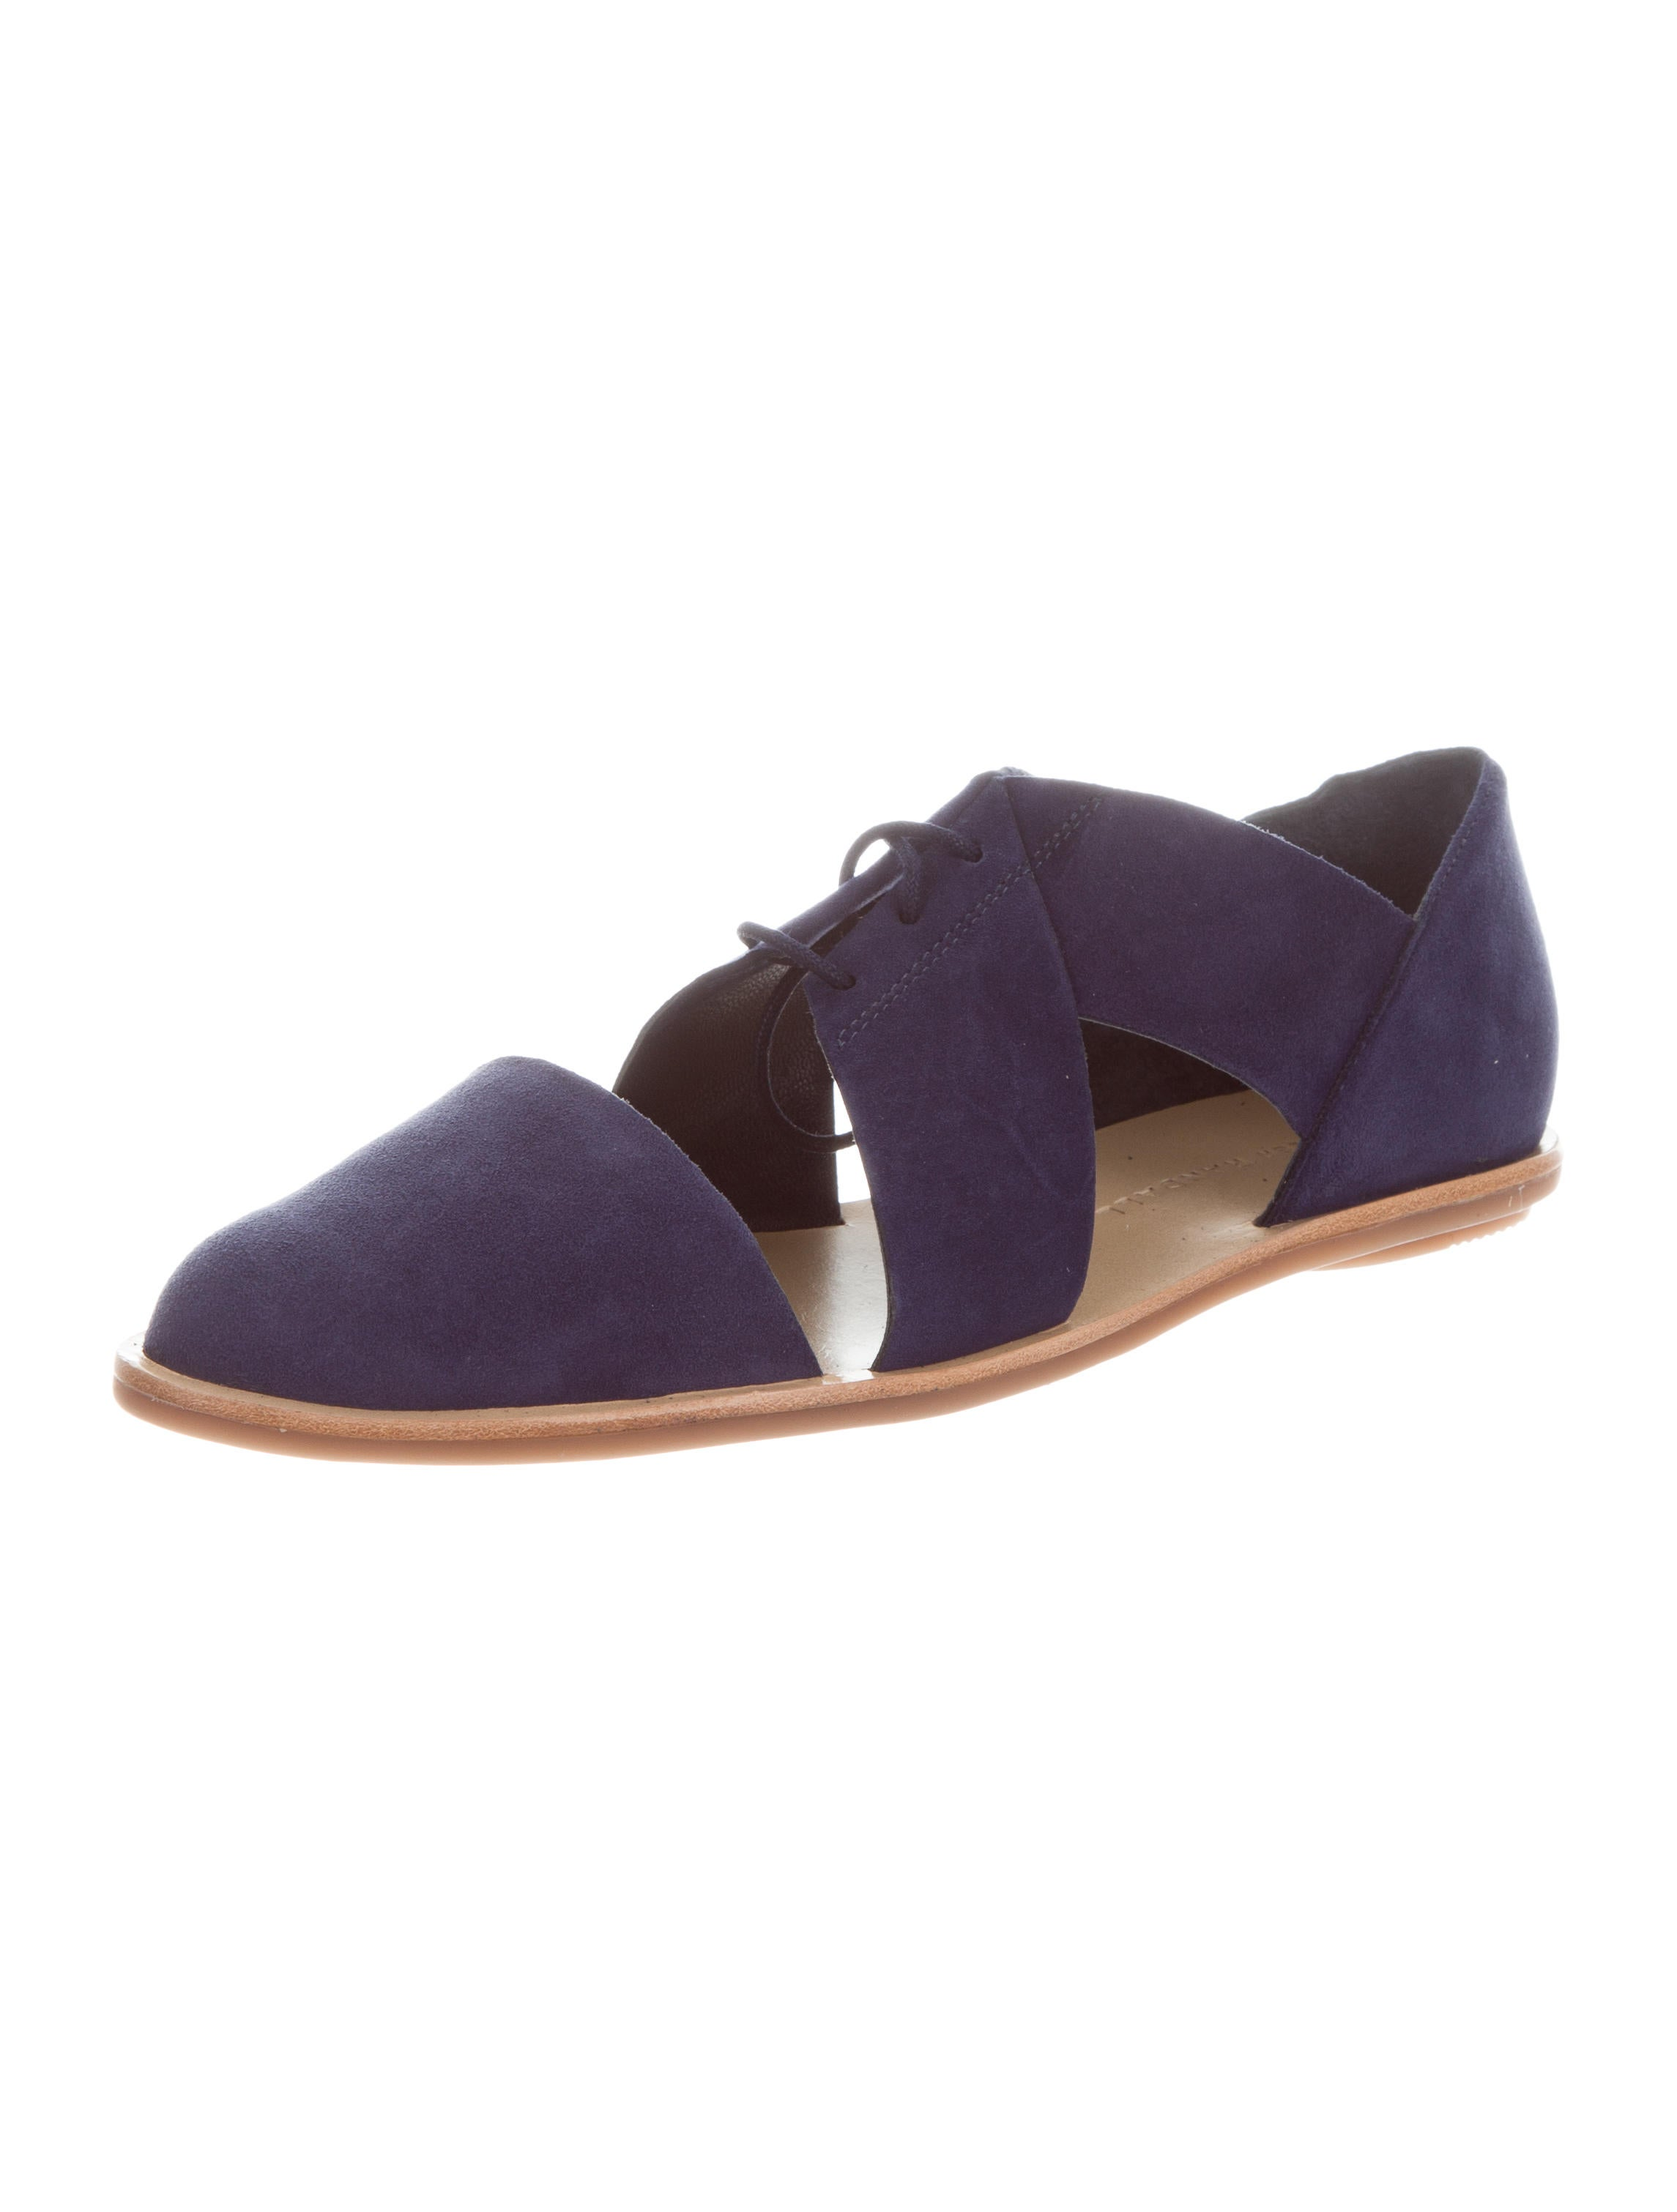 Loeffler Randall Willa Cutout Flats w/ Tags clearance online cheap real free shipping pick a best tumblr online the cheapest for sale sale with mastercard CvThSE